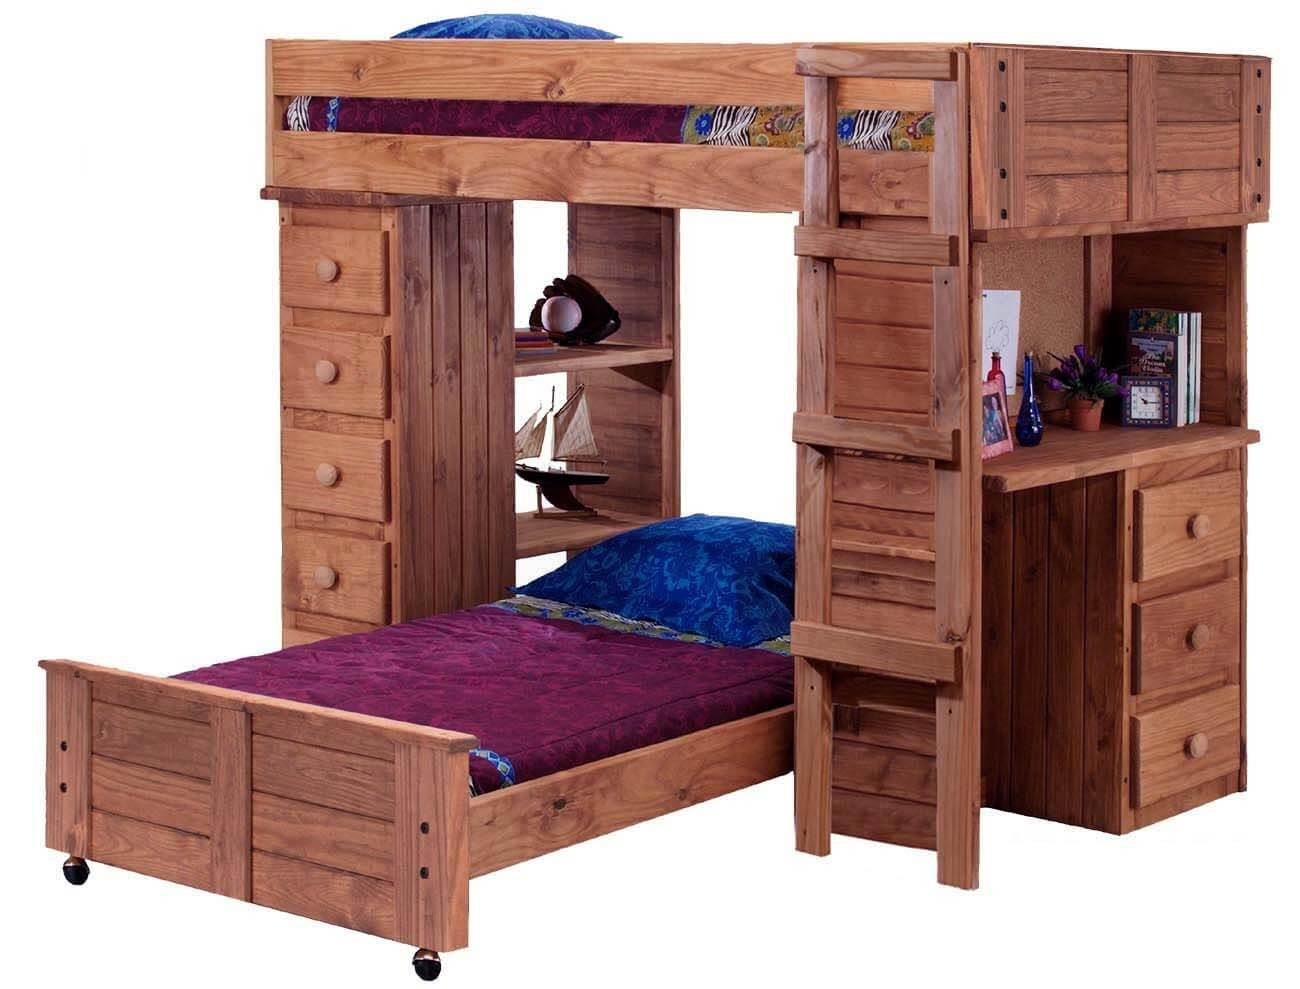 21 top wooden l shaped bunk beds with space saving features. Black Bedroom Furniture Sets. Home Design Ideas